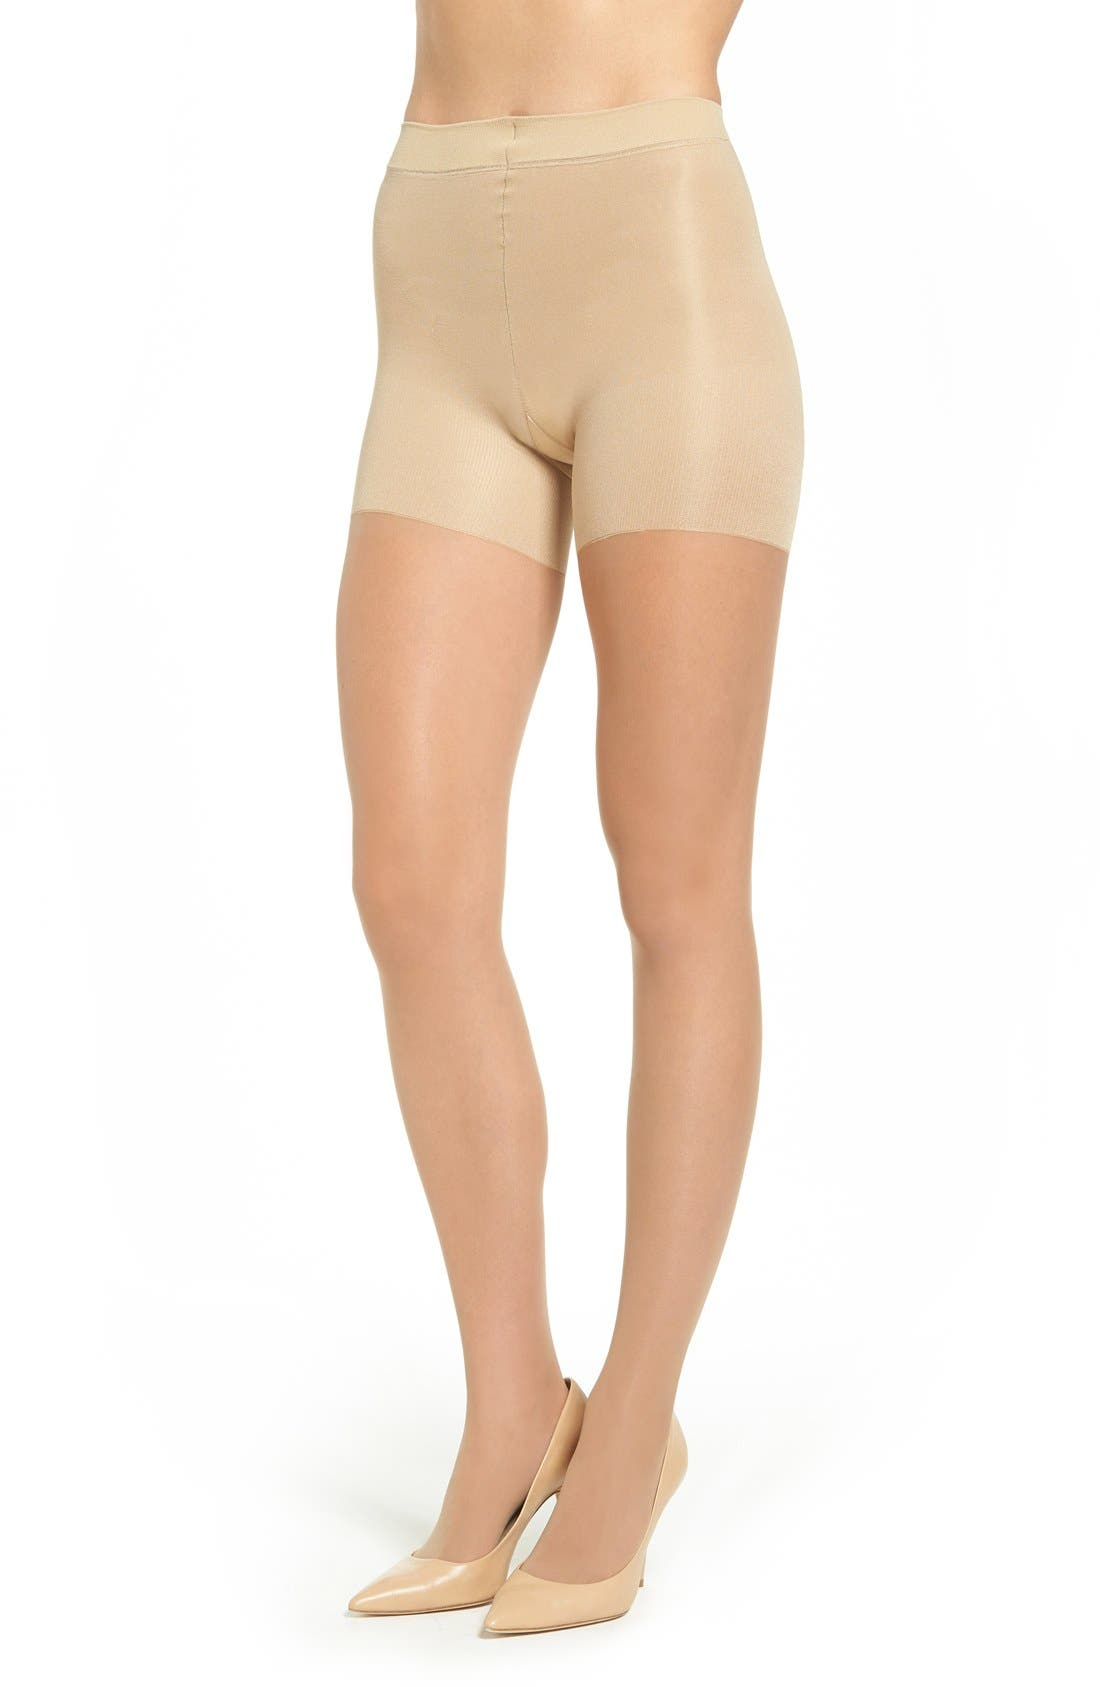 Main Image - SPANX® Leg Support Sheers (Regular & Plus Size)